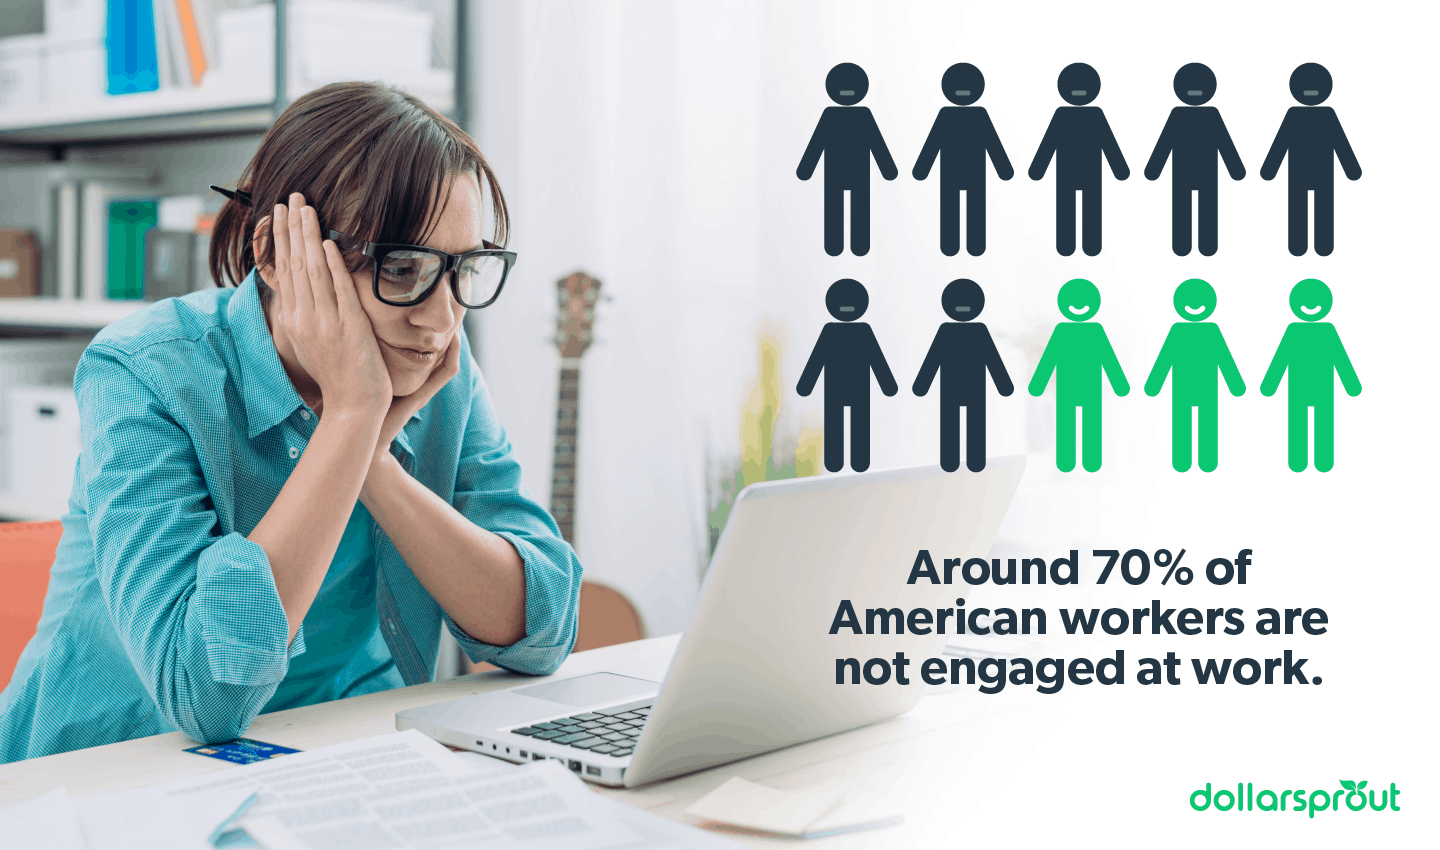 70% of American workers are not engaged at work